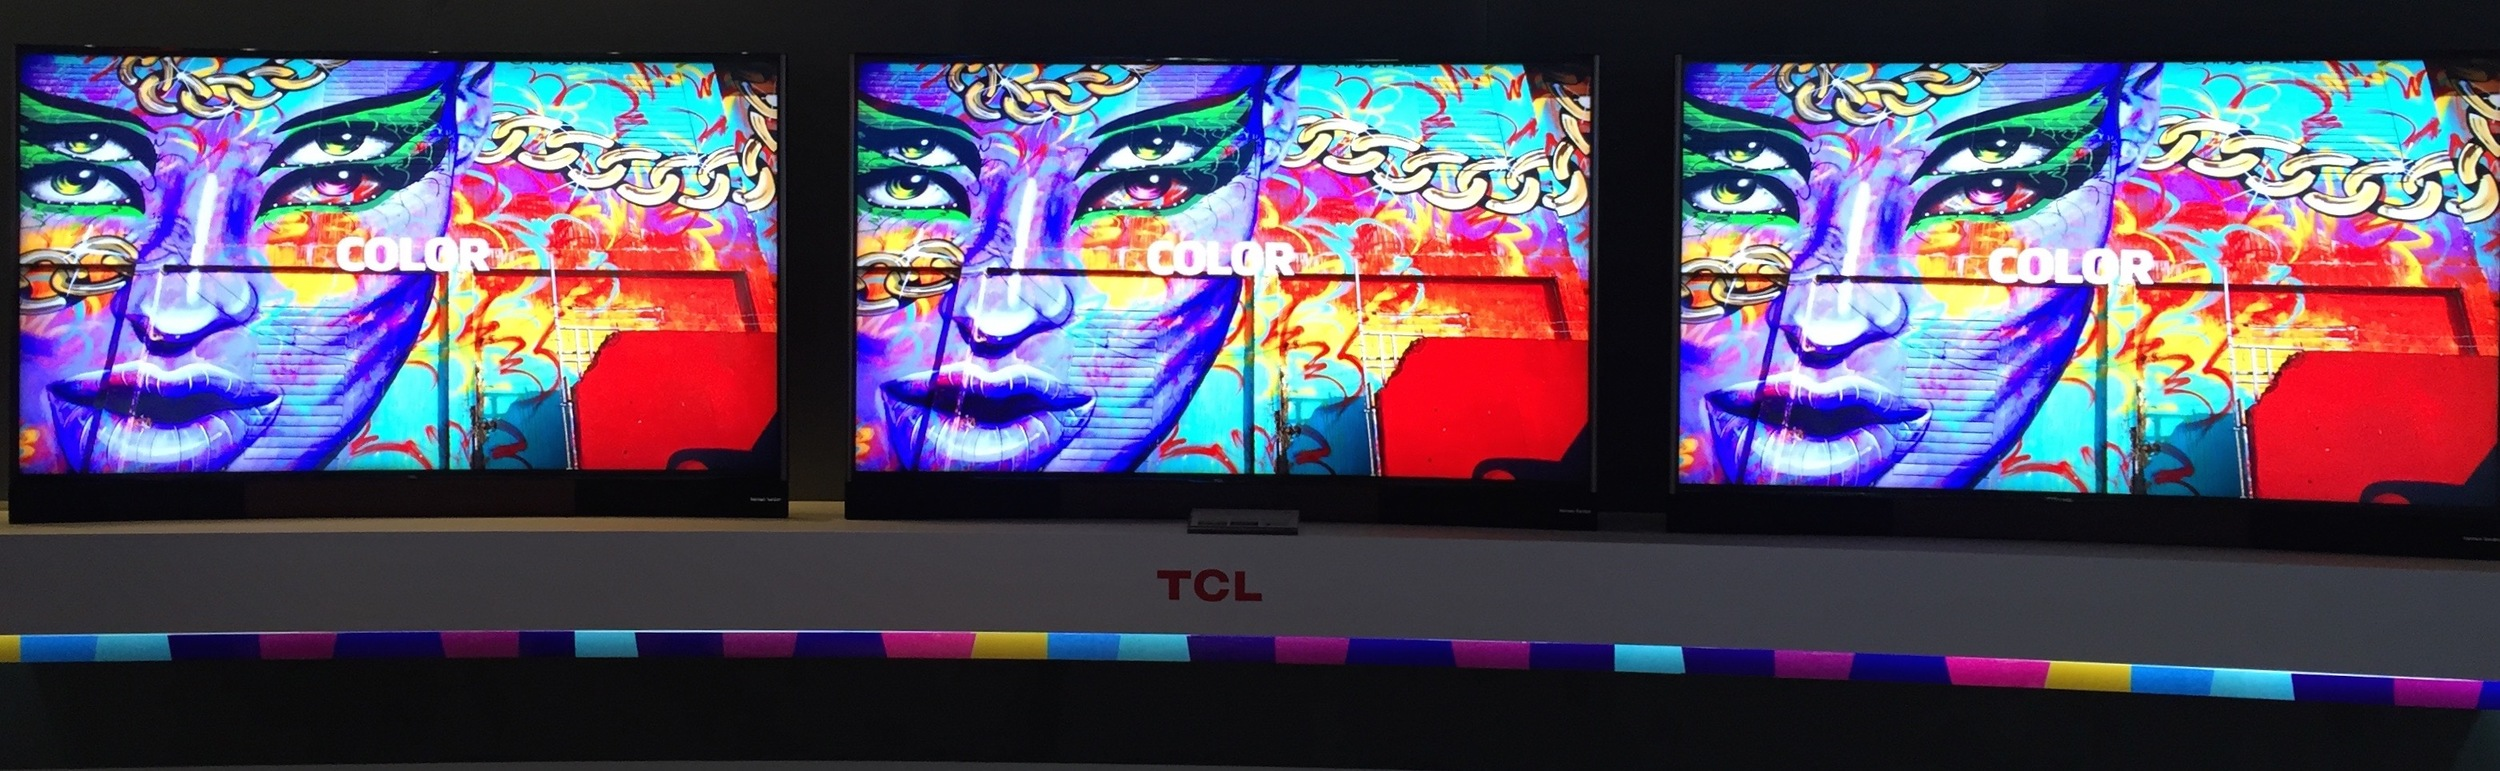 TCL QLED2.0 TV at IFA 2015 showing DolbyVision content specially mastered to take advantage of it's Quantum Dot-enhanced color capabilities.